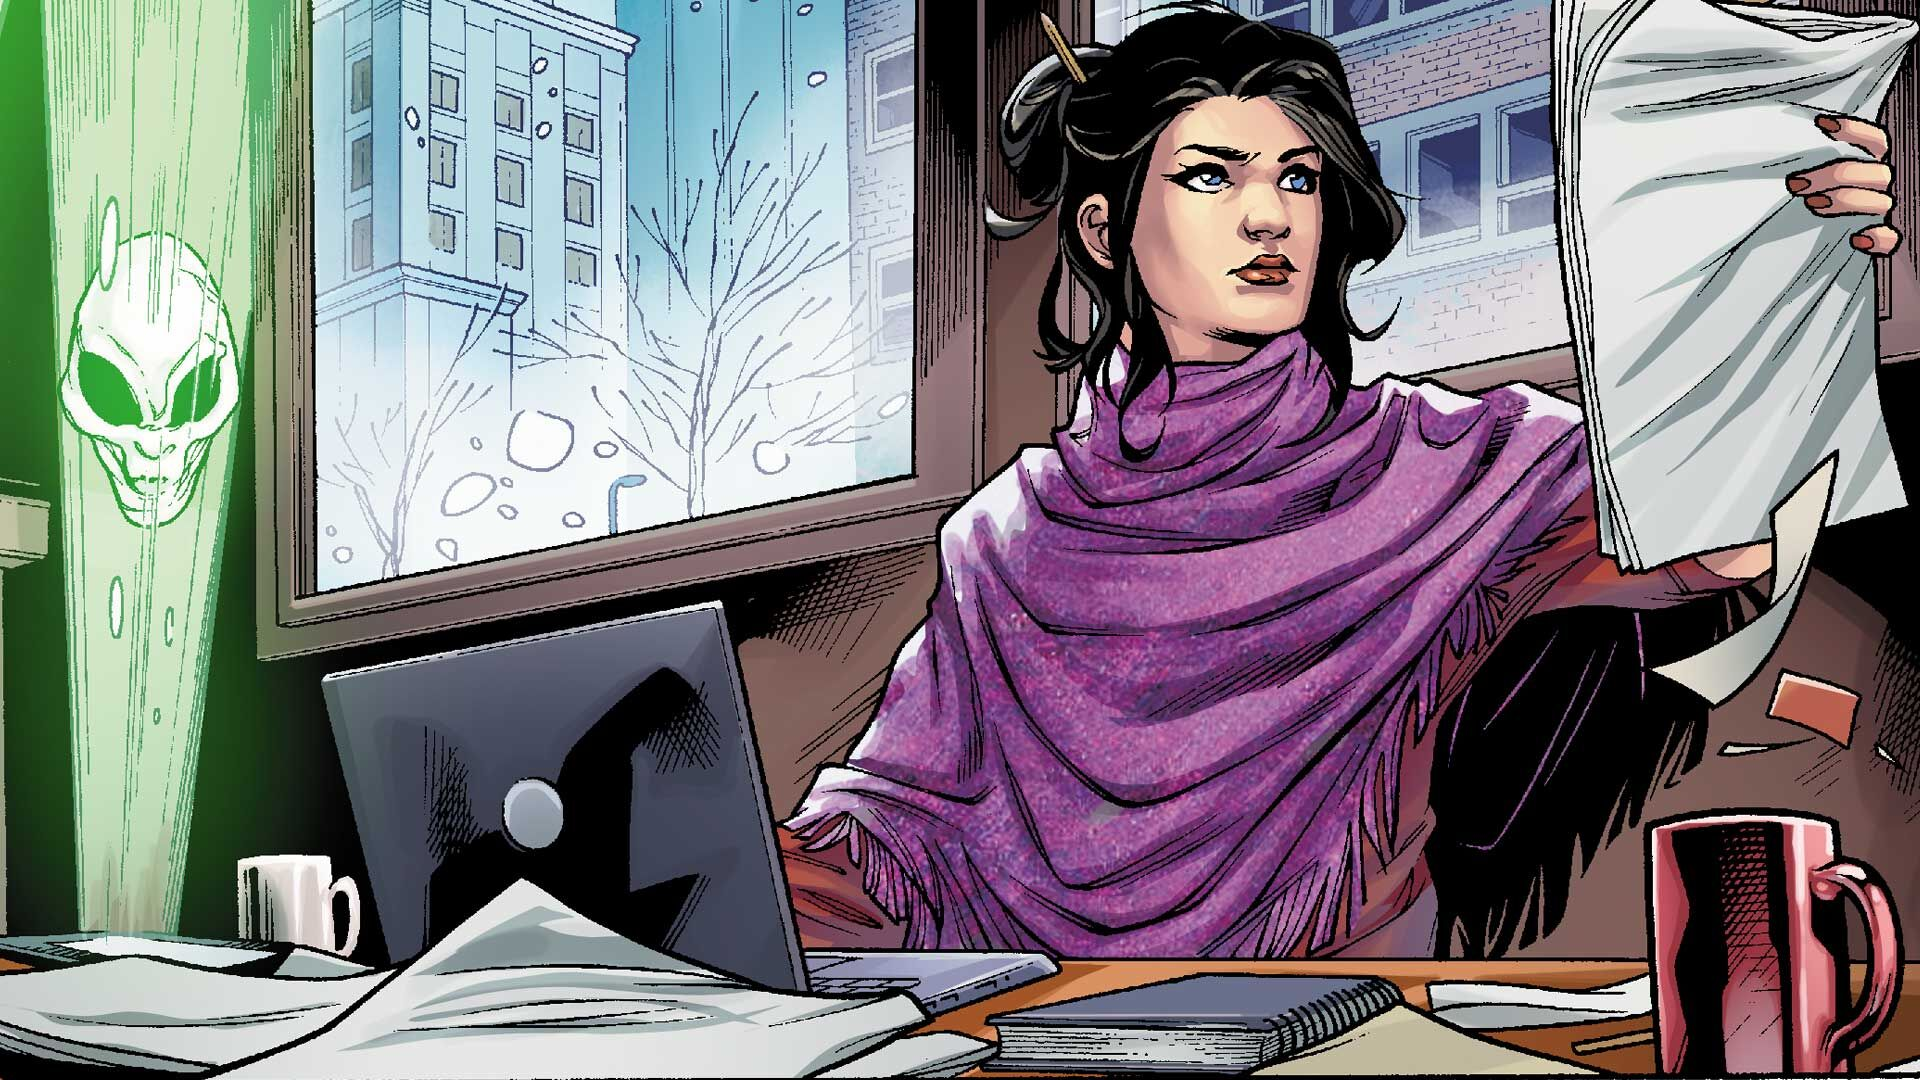 Ranking the live-action portrayals of Lois Lane